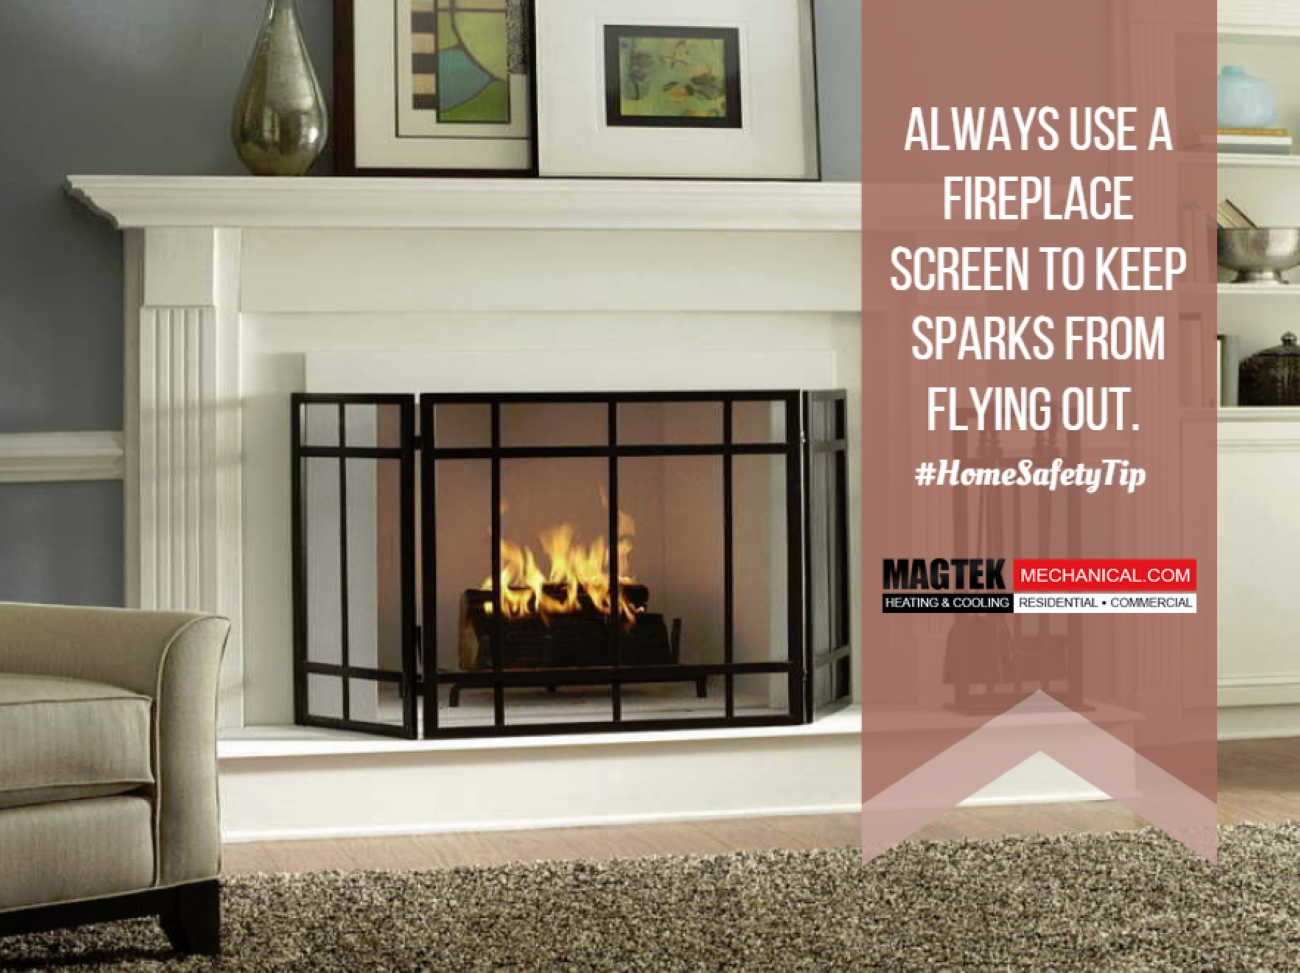 Be Sure To Use A Fireplace Screen Before Cozying Up Next To The